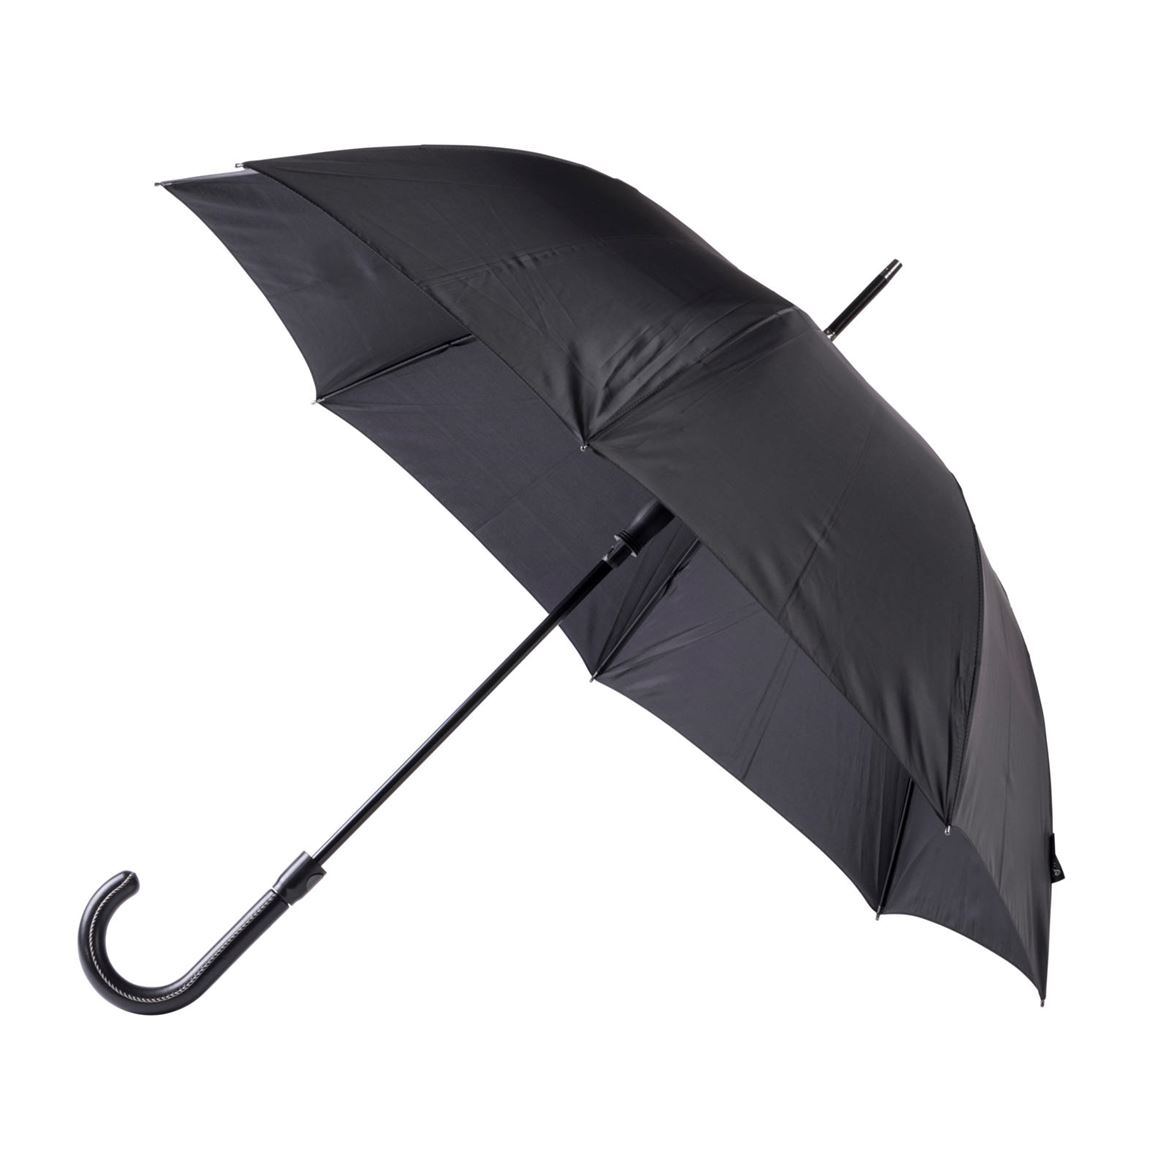 FALCONE Luxe parapluie 2 couleurs noir, multicolore Long. 90 cm; Ø 101 cm_falcone-luxe-parapluie-2-couleurs-noir,-multicolore-long--90-cm;-ø-101-cm